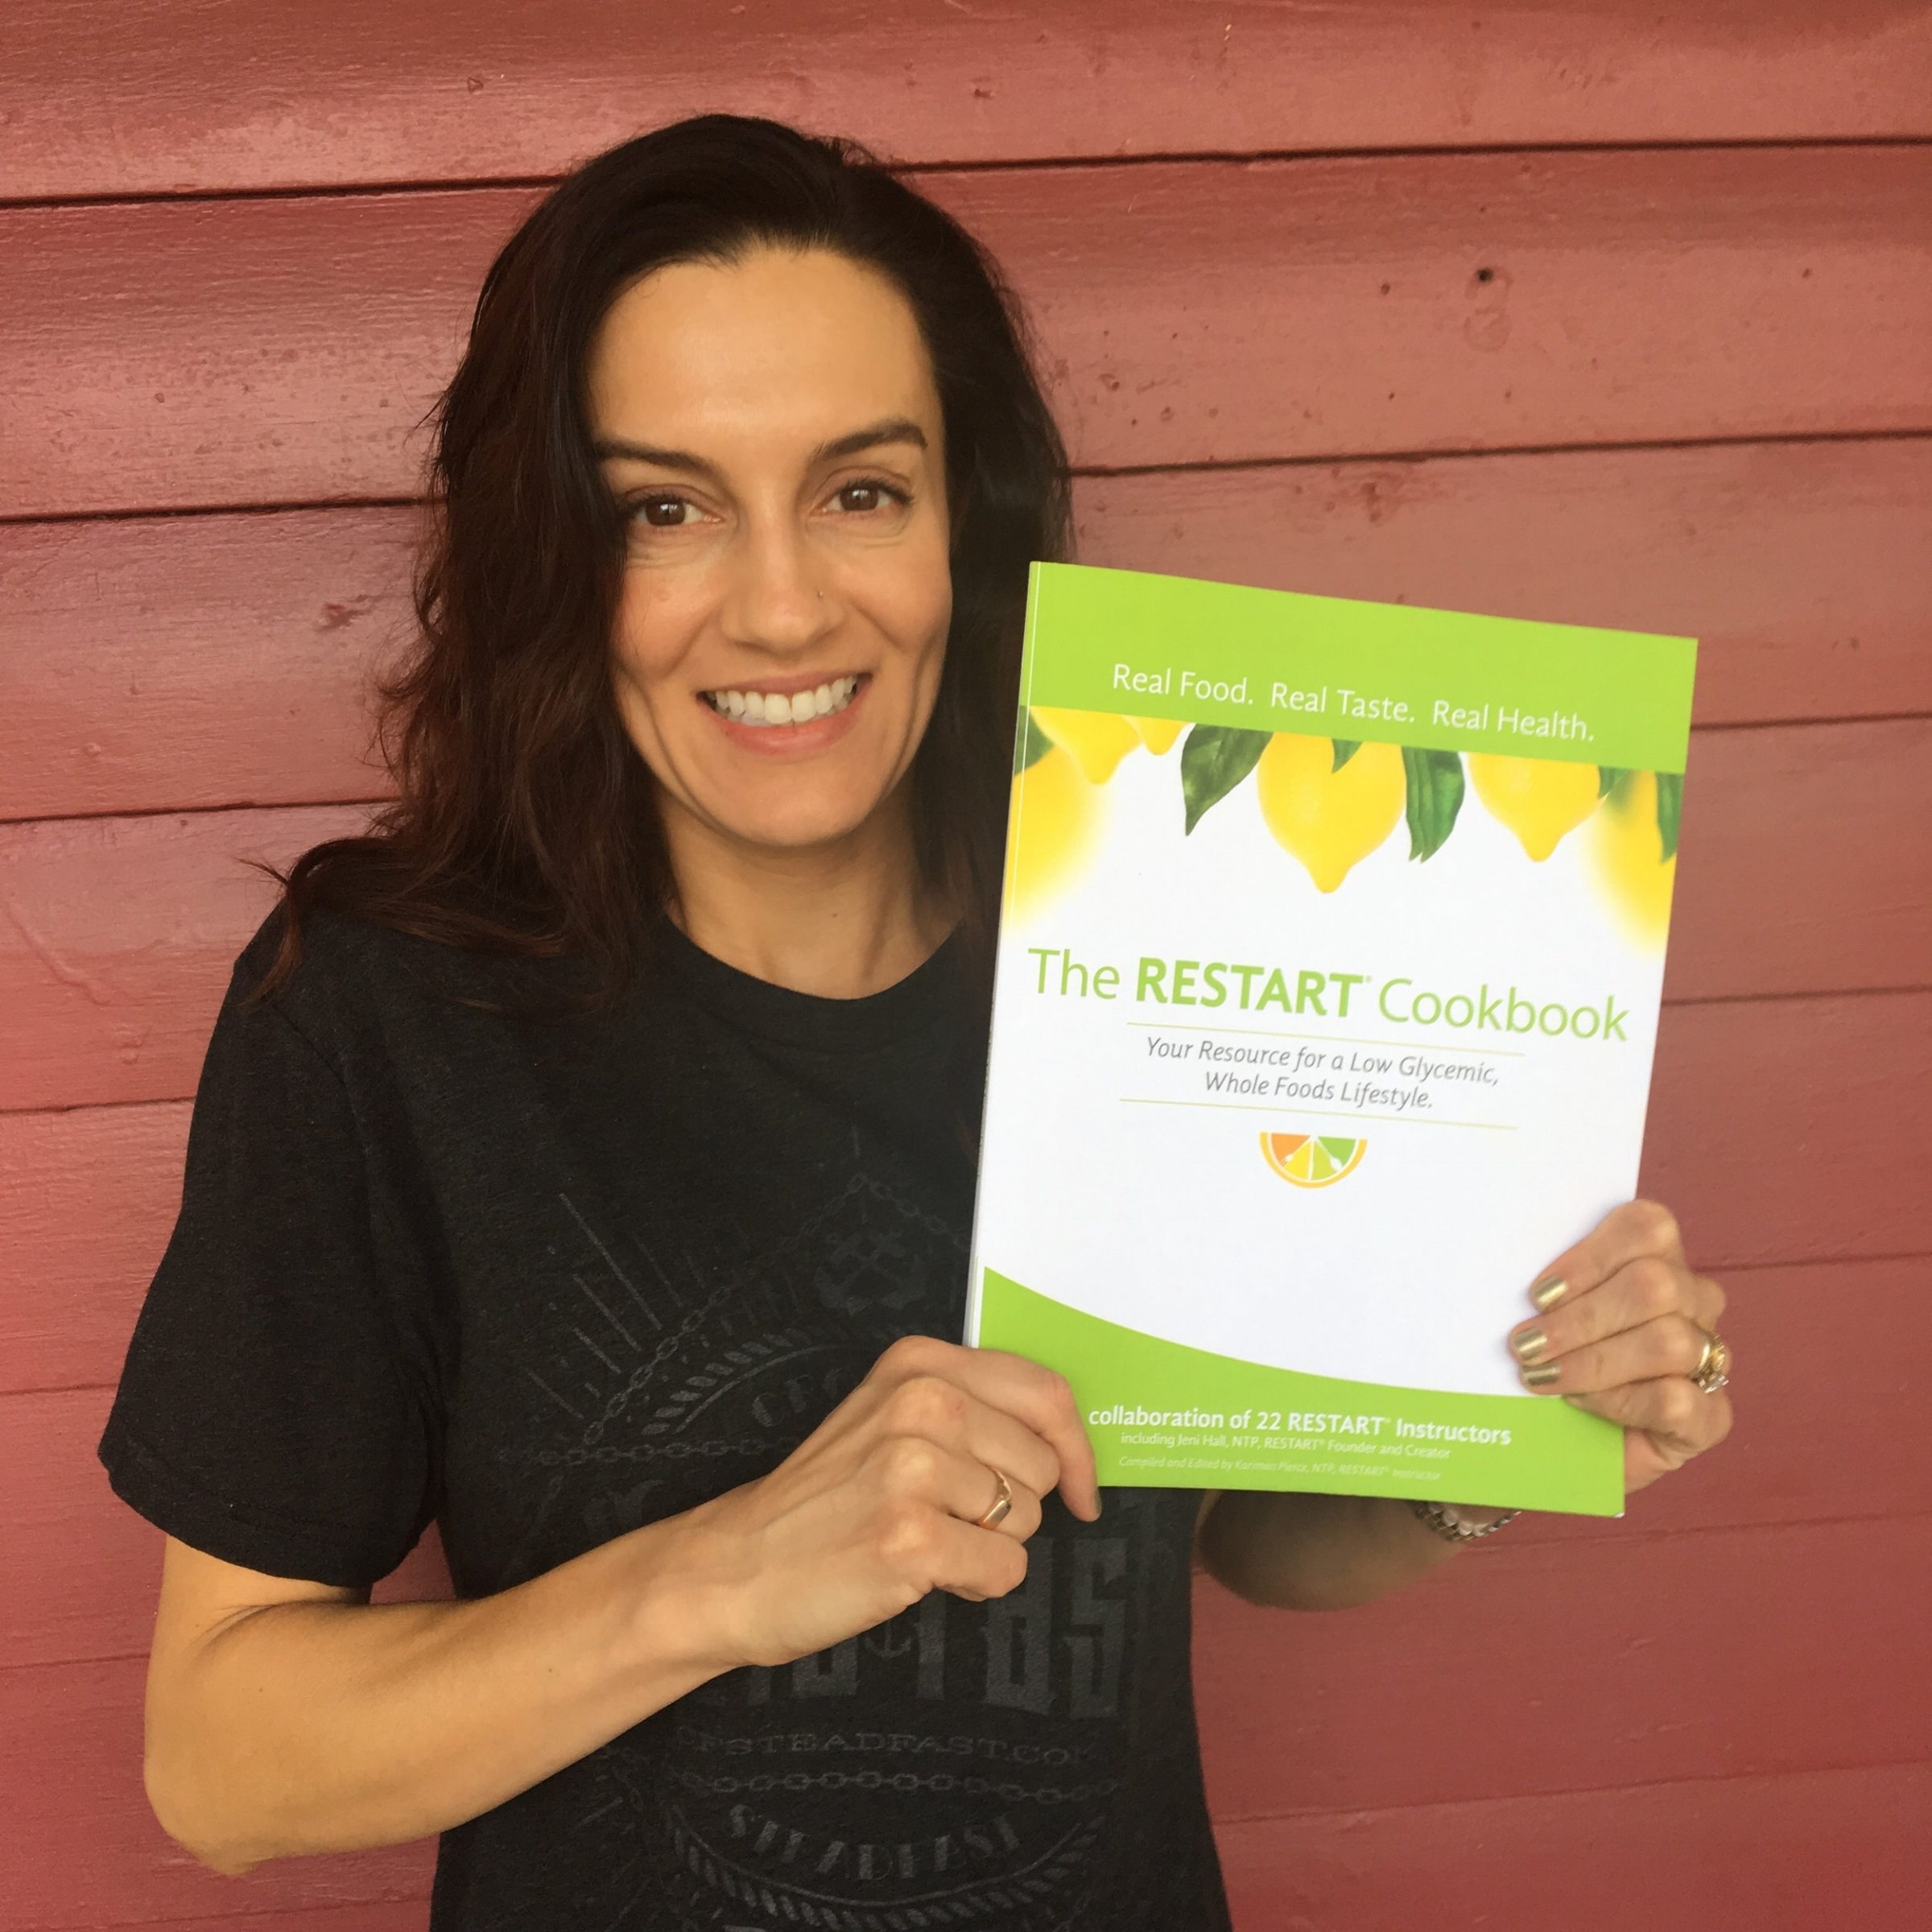 You get a cookbook to help with your healthy food preparation when you join the program!